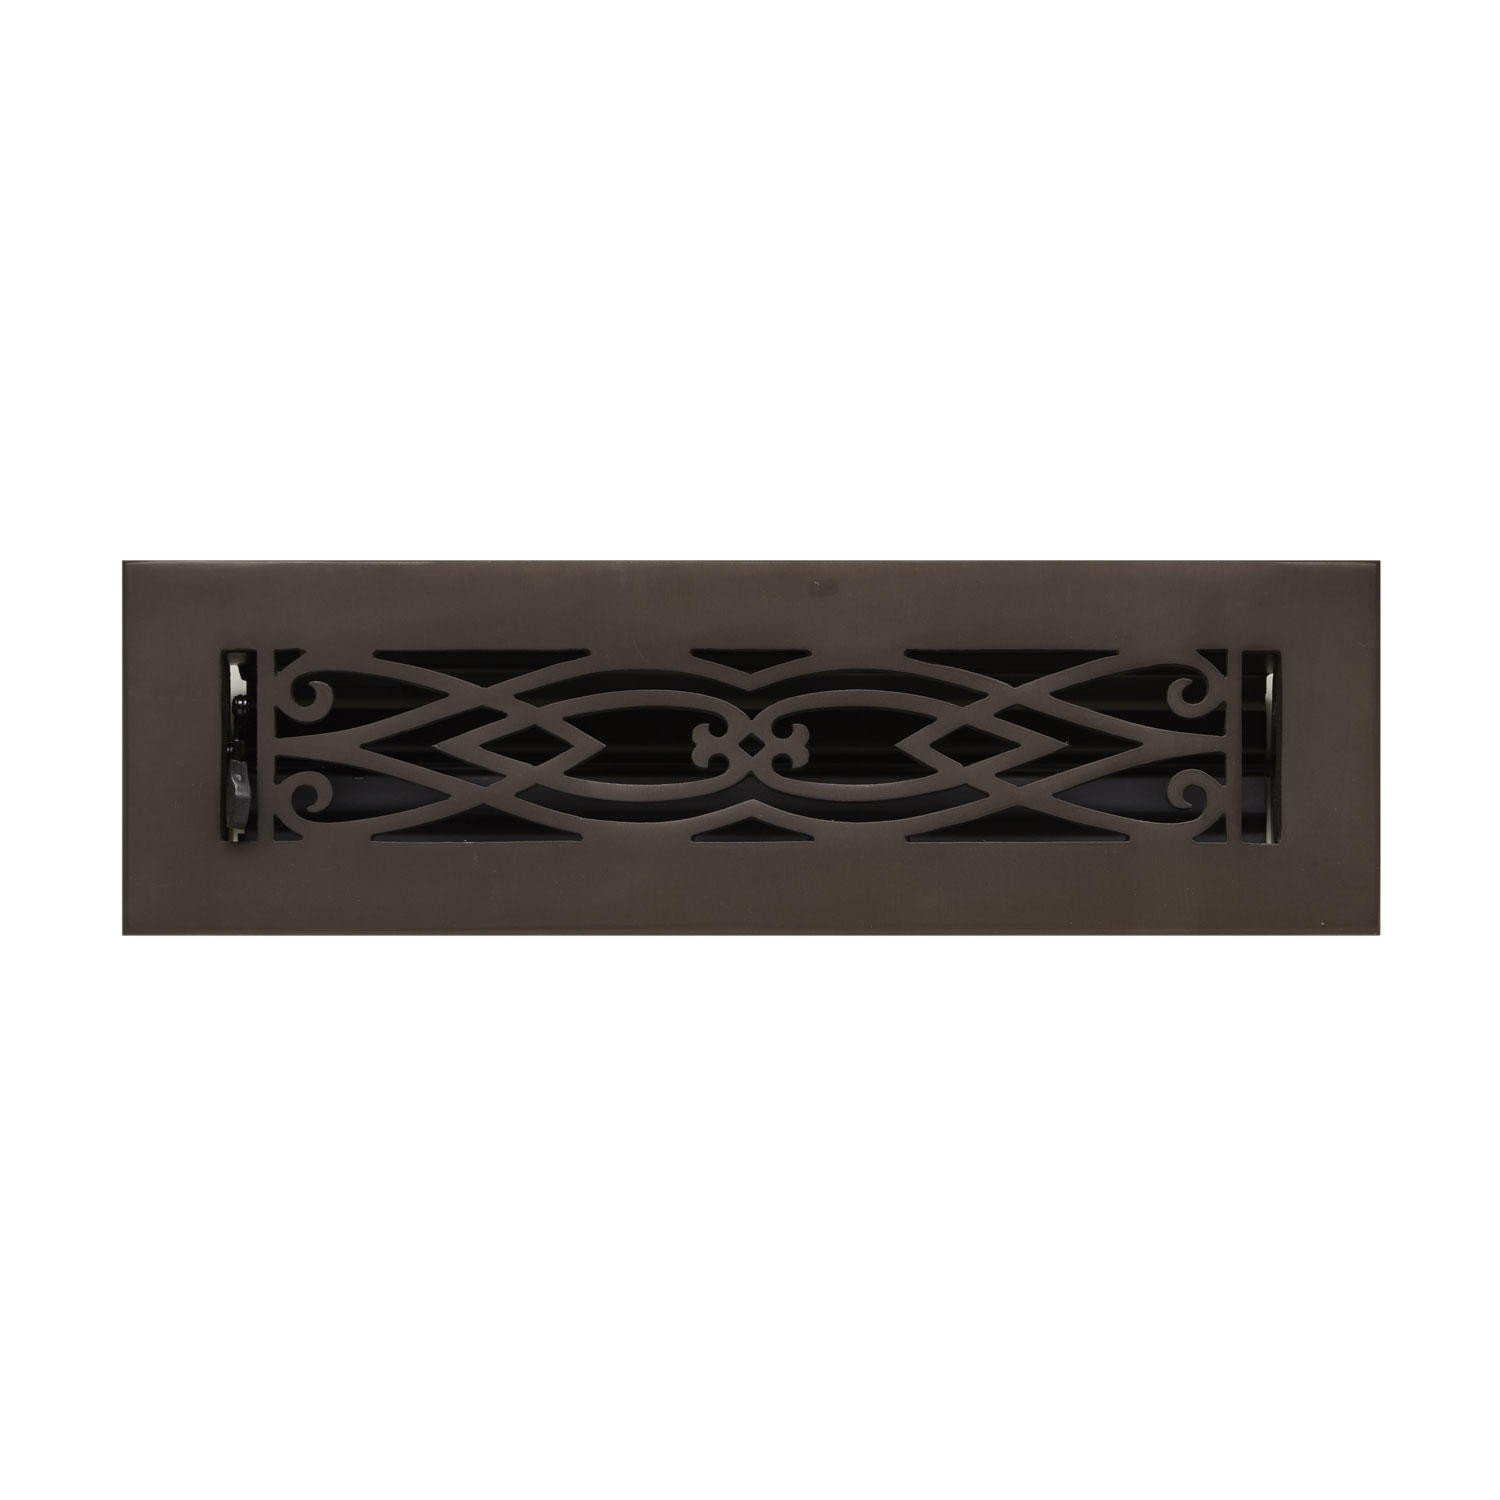 Naiture 2-1/4'' x 14'' Brass Floor Register Victorian Style Oil Rubbed Bronze Finish